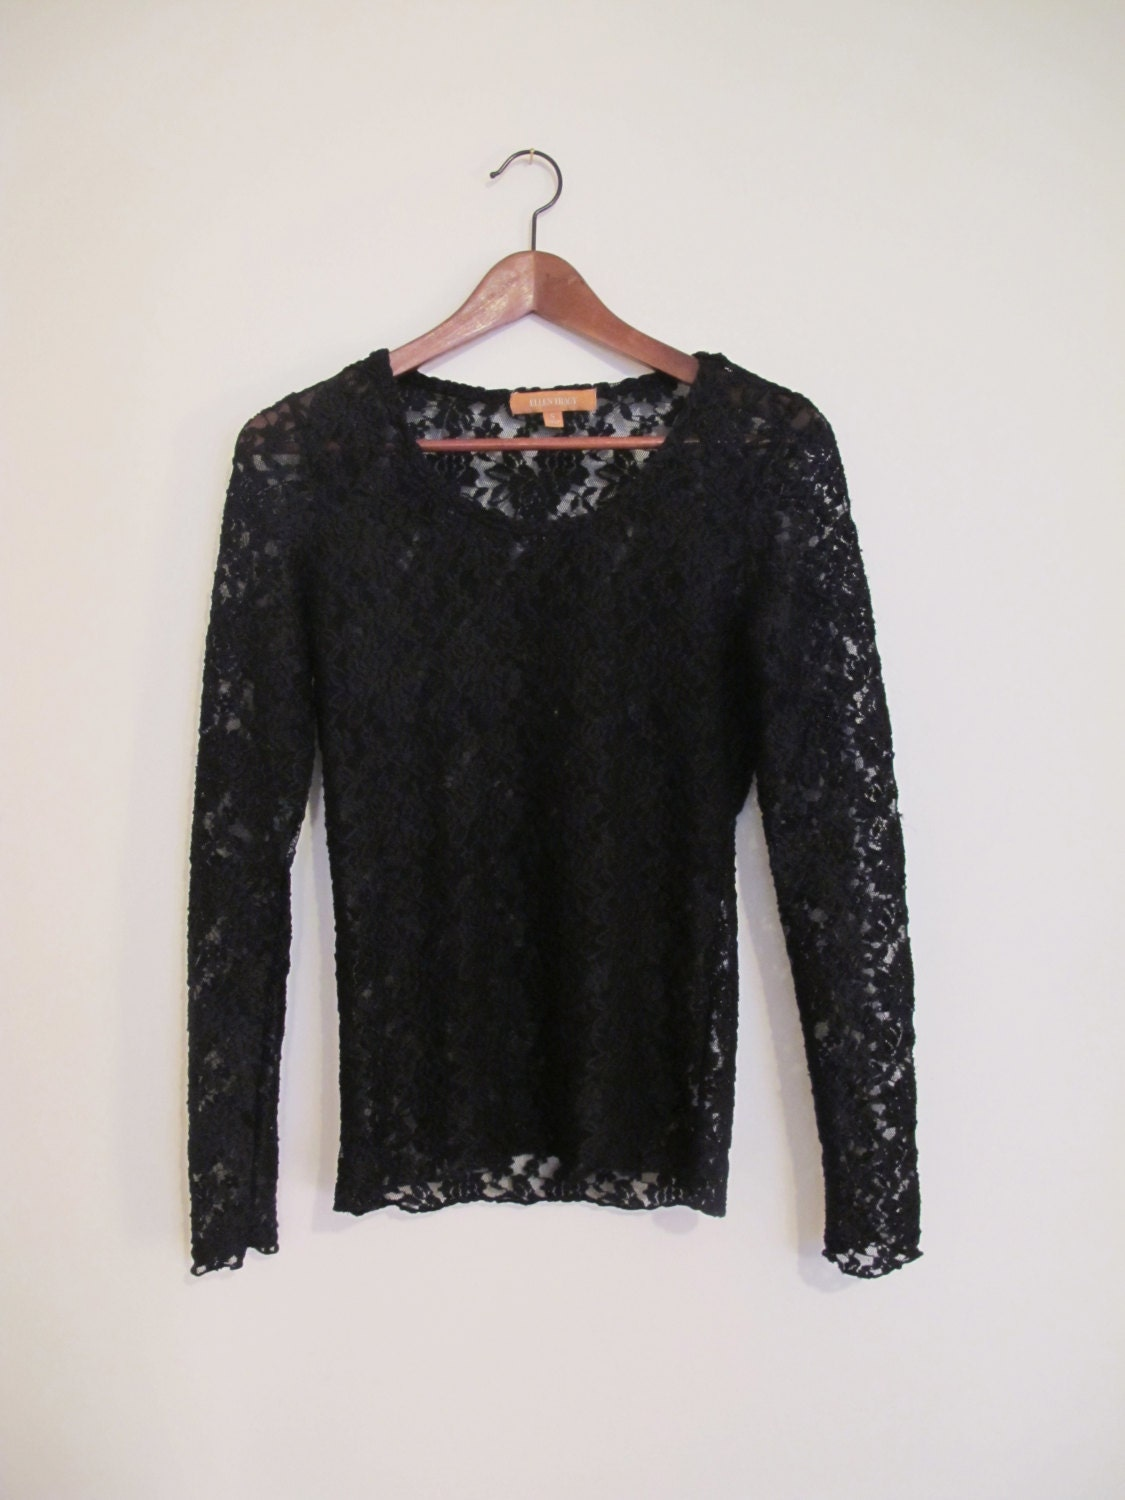 90s Vintage Black Lace Long Sleeved Shirt